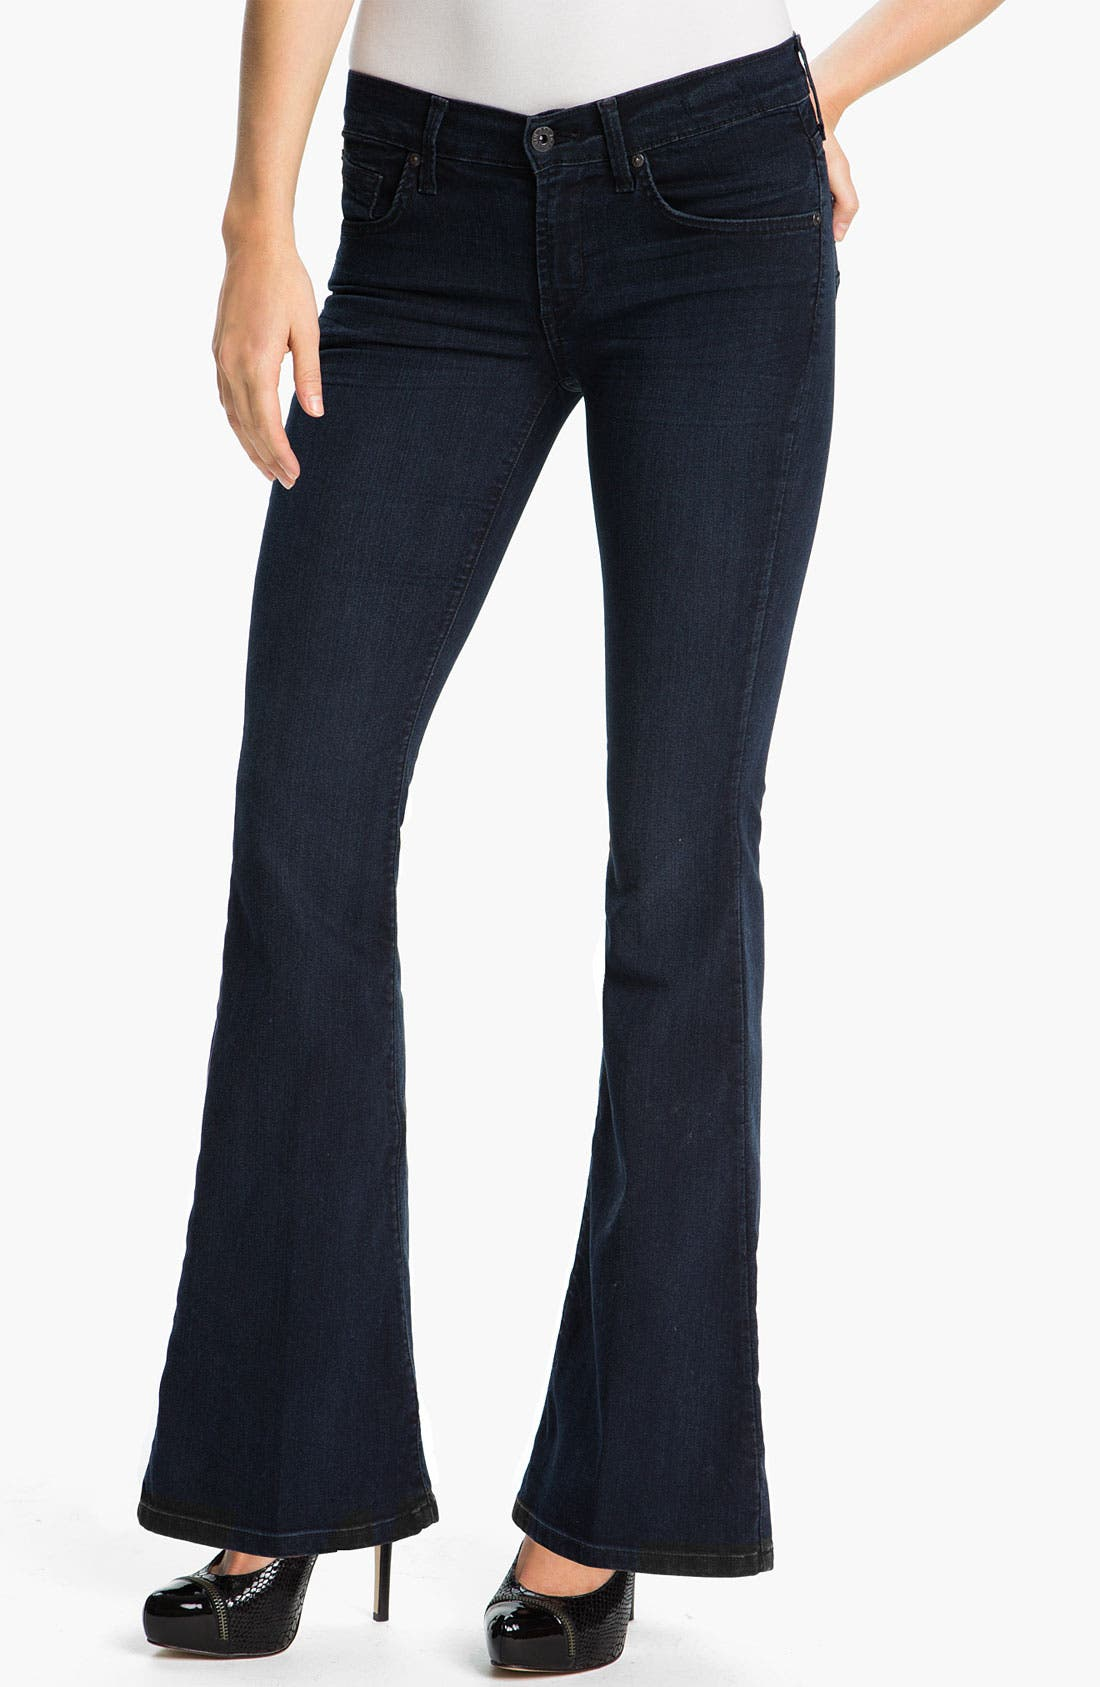 Main Image - James Jeans 'Ultra Flare' Jeans (Amore) (Petite)